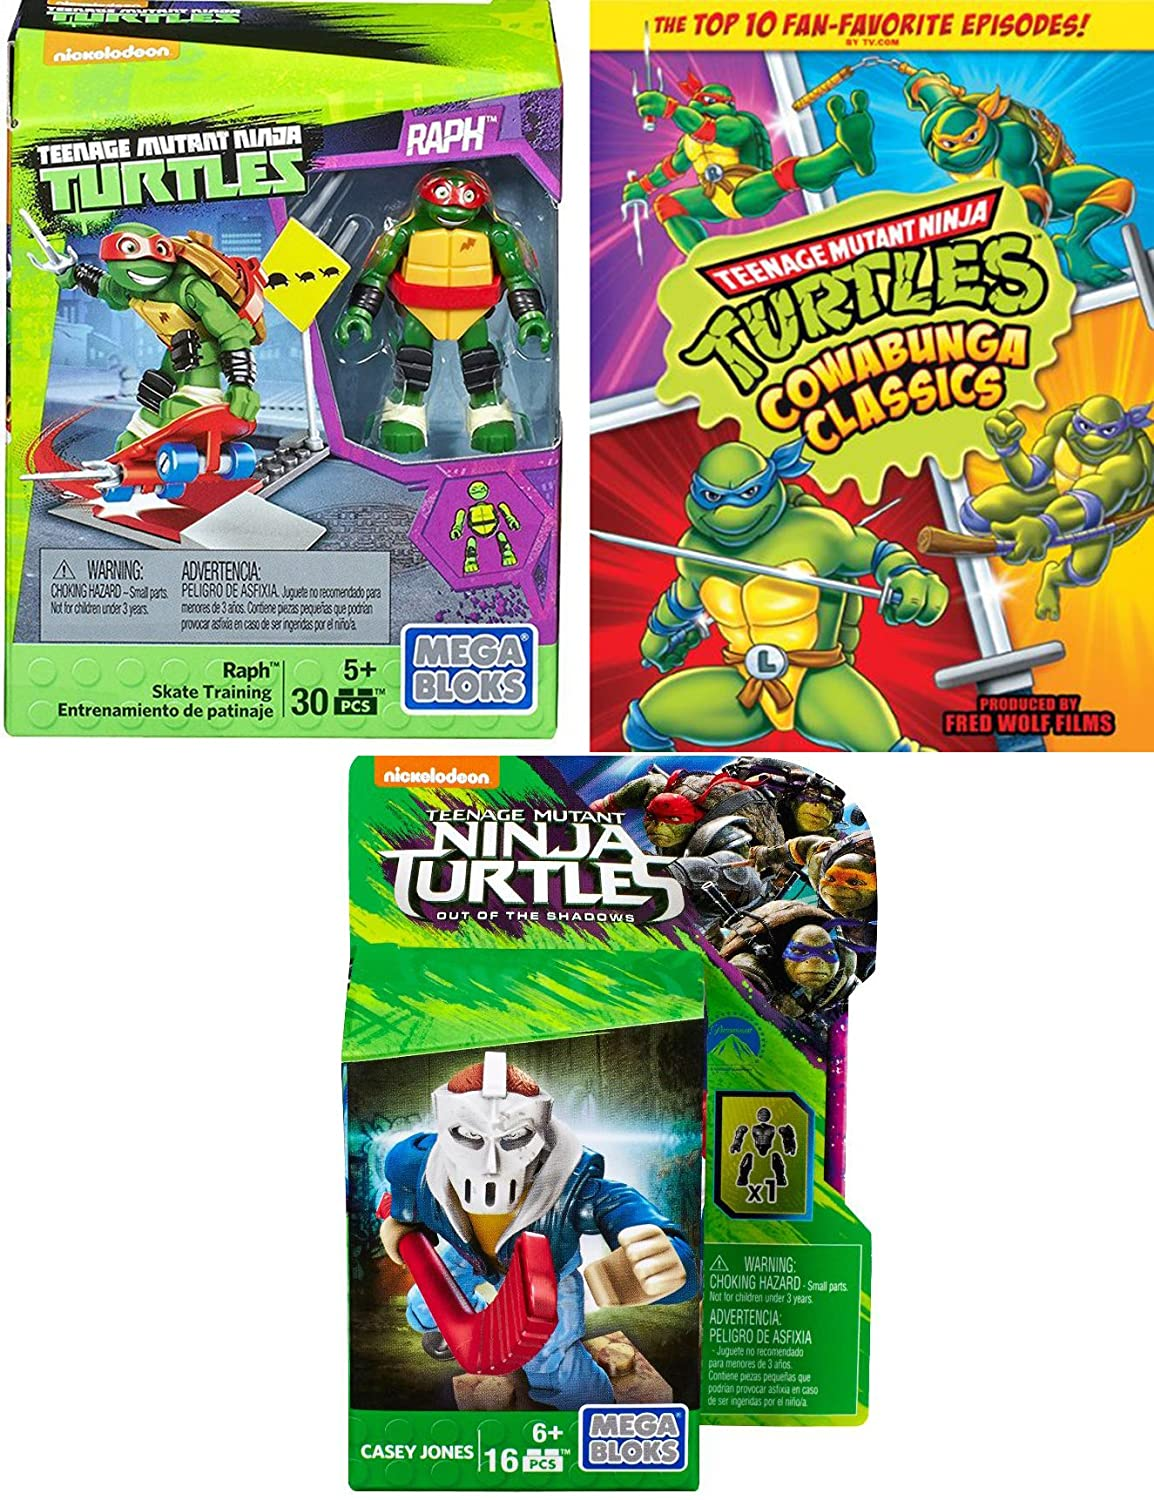 Amazon.com: Teenage Mutant Ninja Turtles: 10 Episode Cartoon ...